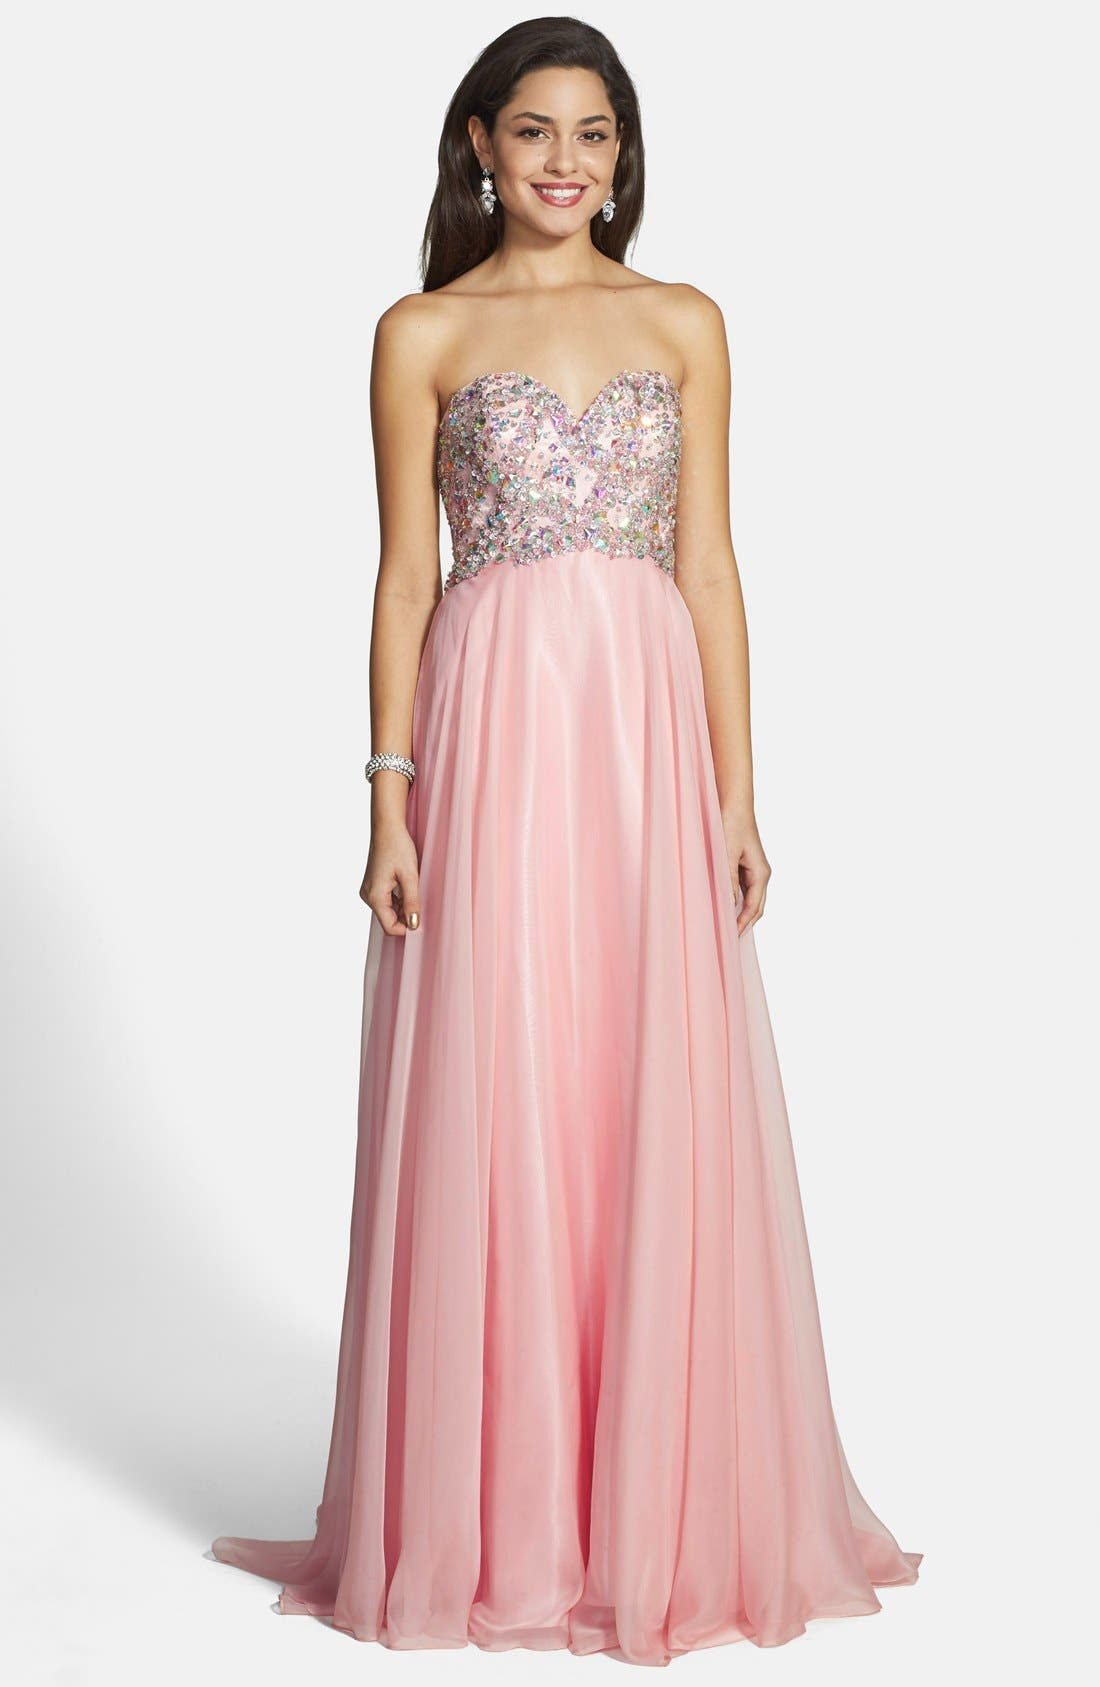 Main Image - Alyce Paris Embellished Strapless Chiffon Gown